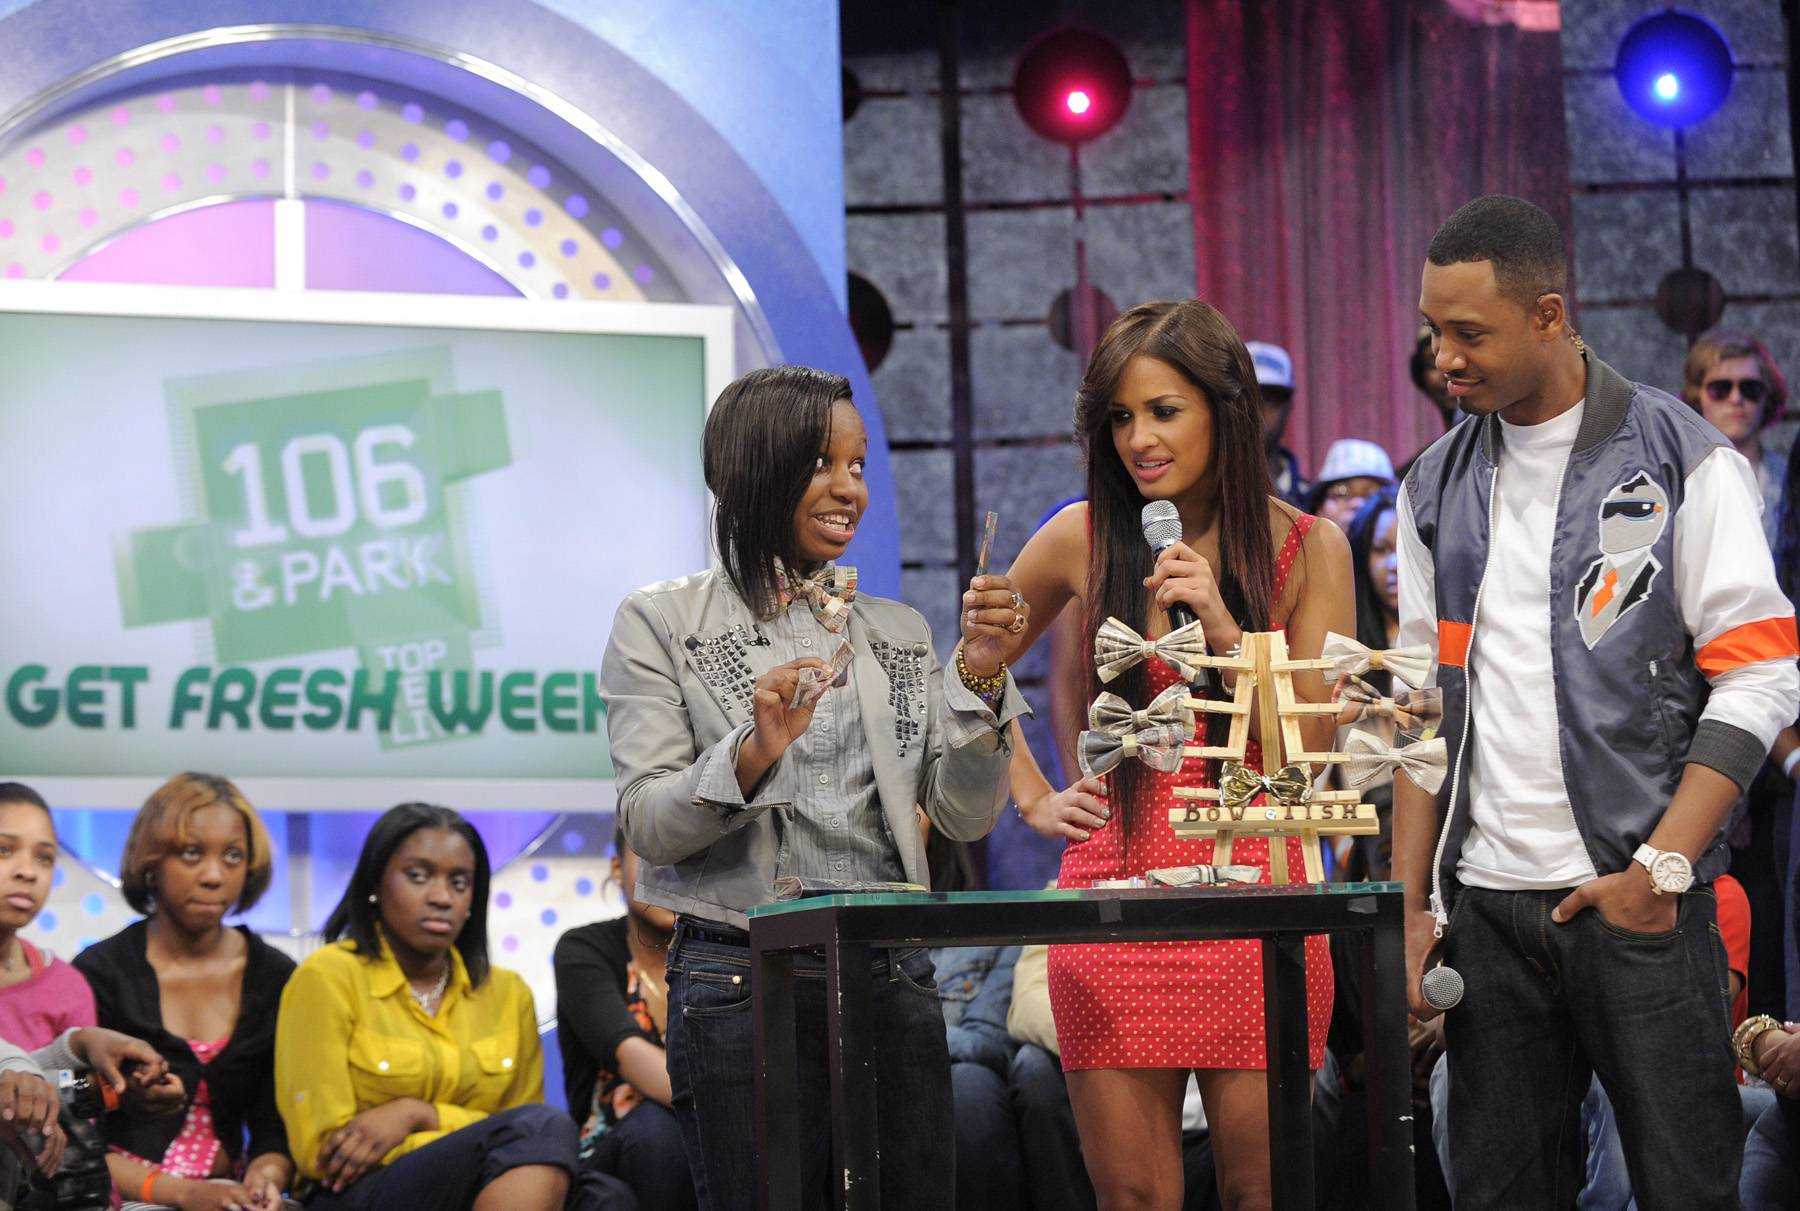 Take One - Tisha Johnson on set with Terrence and Rocsi and 106 & Park, May 3, 2012. (Photo by: John Ricard / BET)